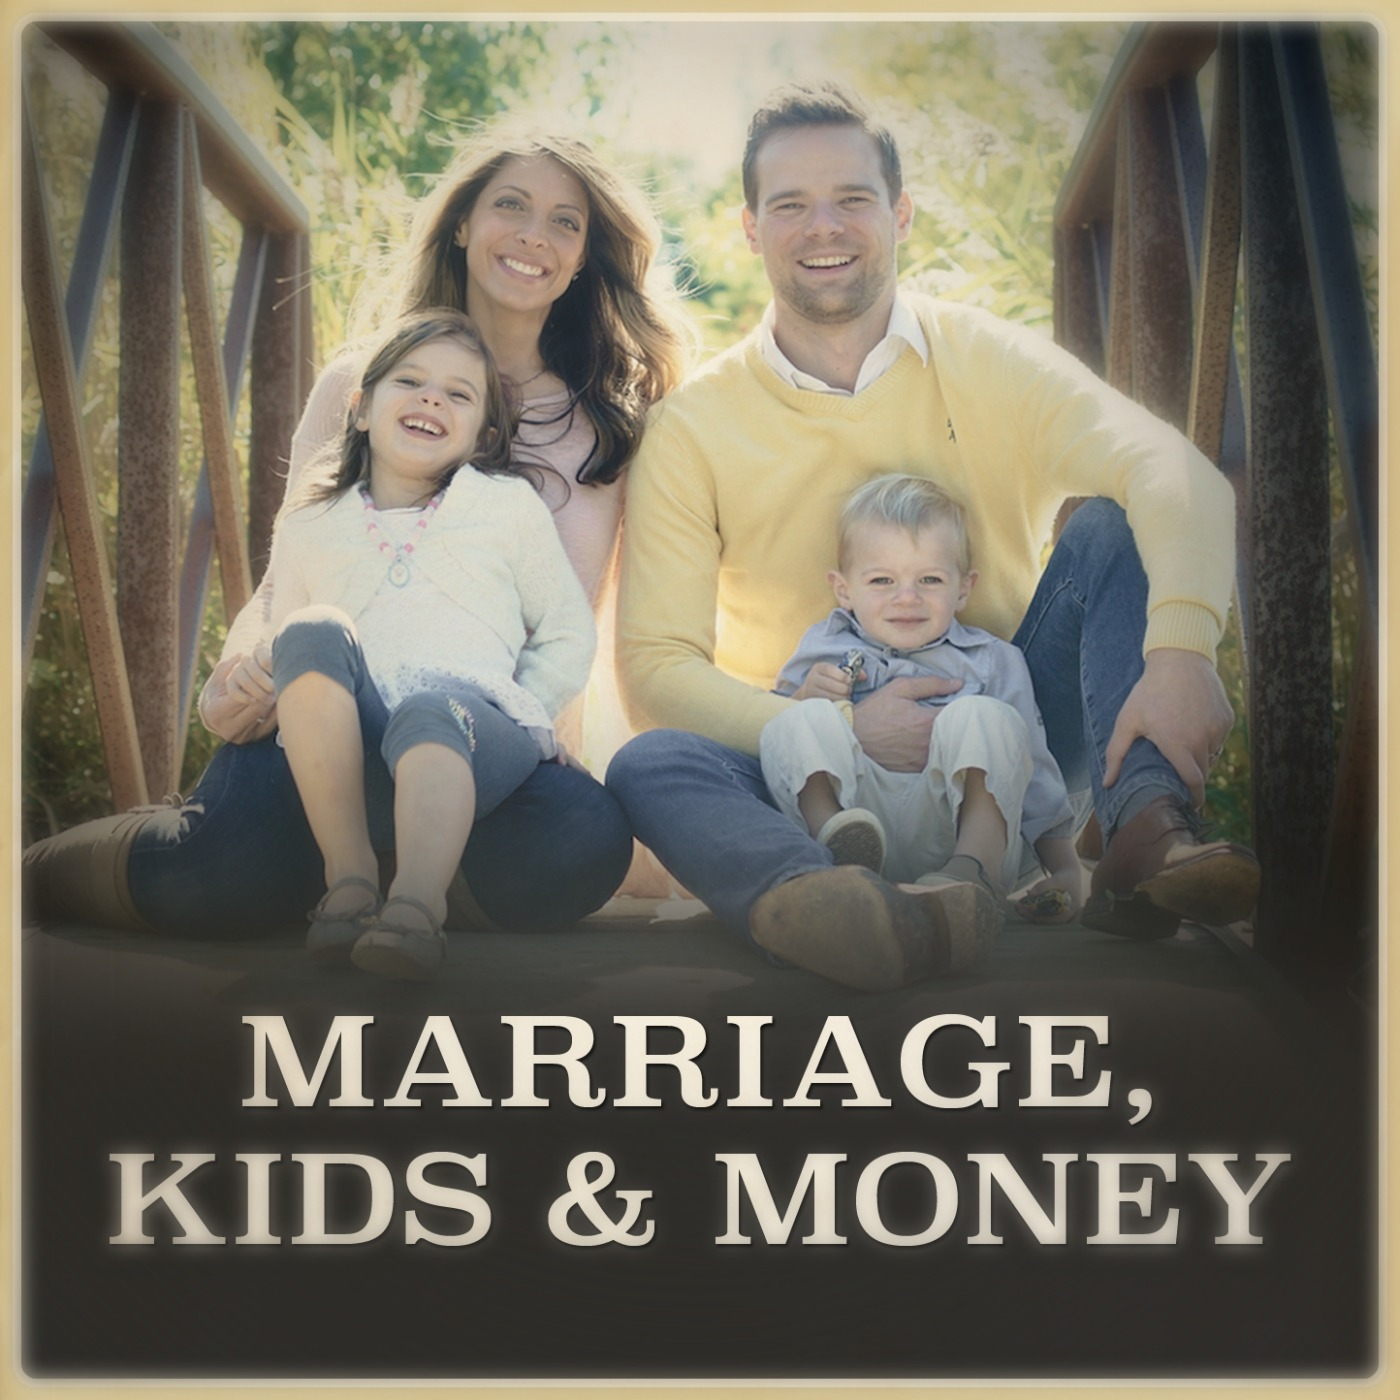 Money Smart Kids: Raising Children to Understand Financial Independence - with Doug Nordman and Carol Pittner